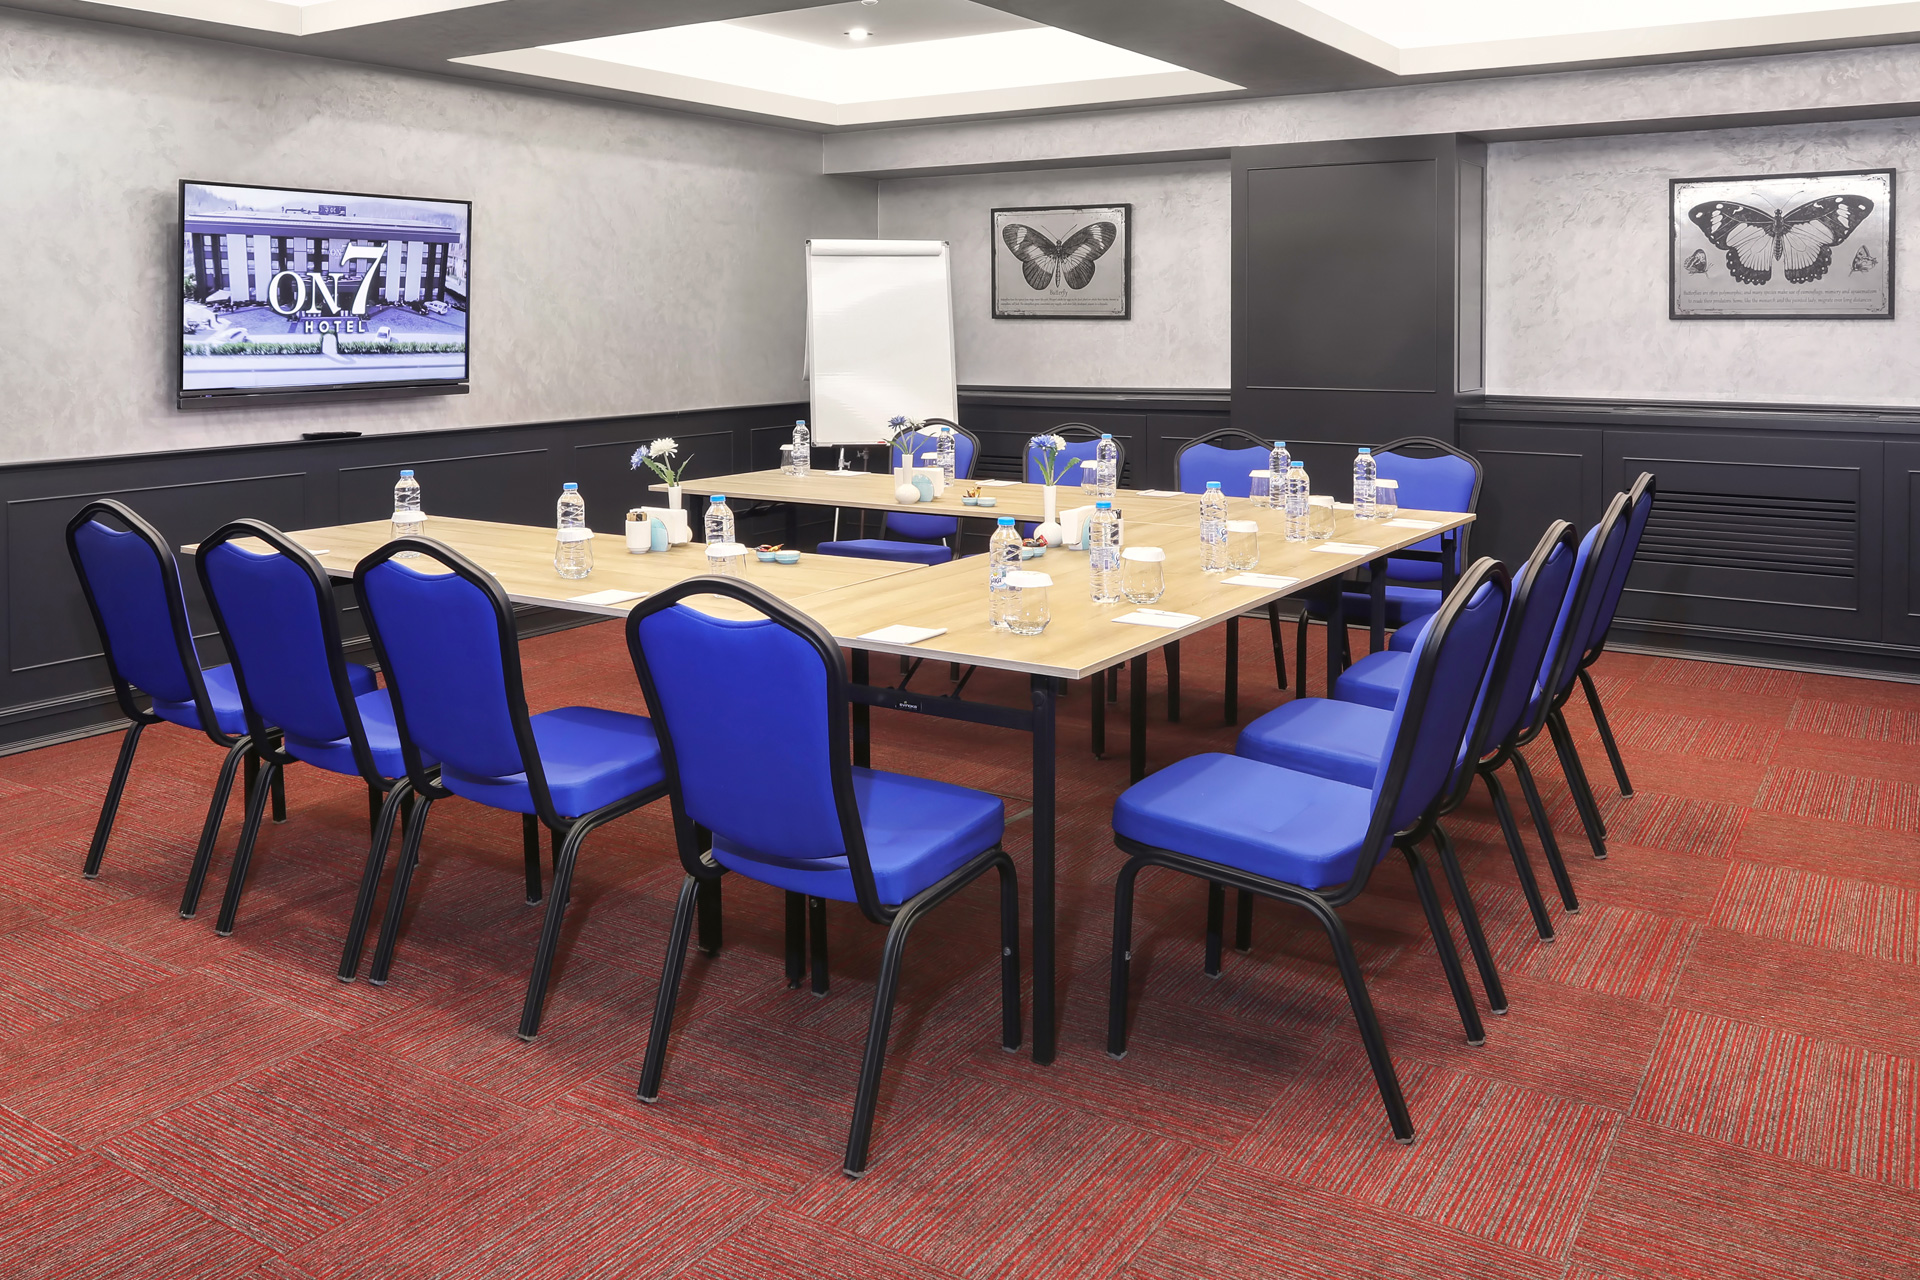 MEETING ROOM NO.2